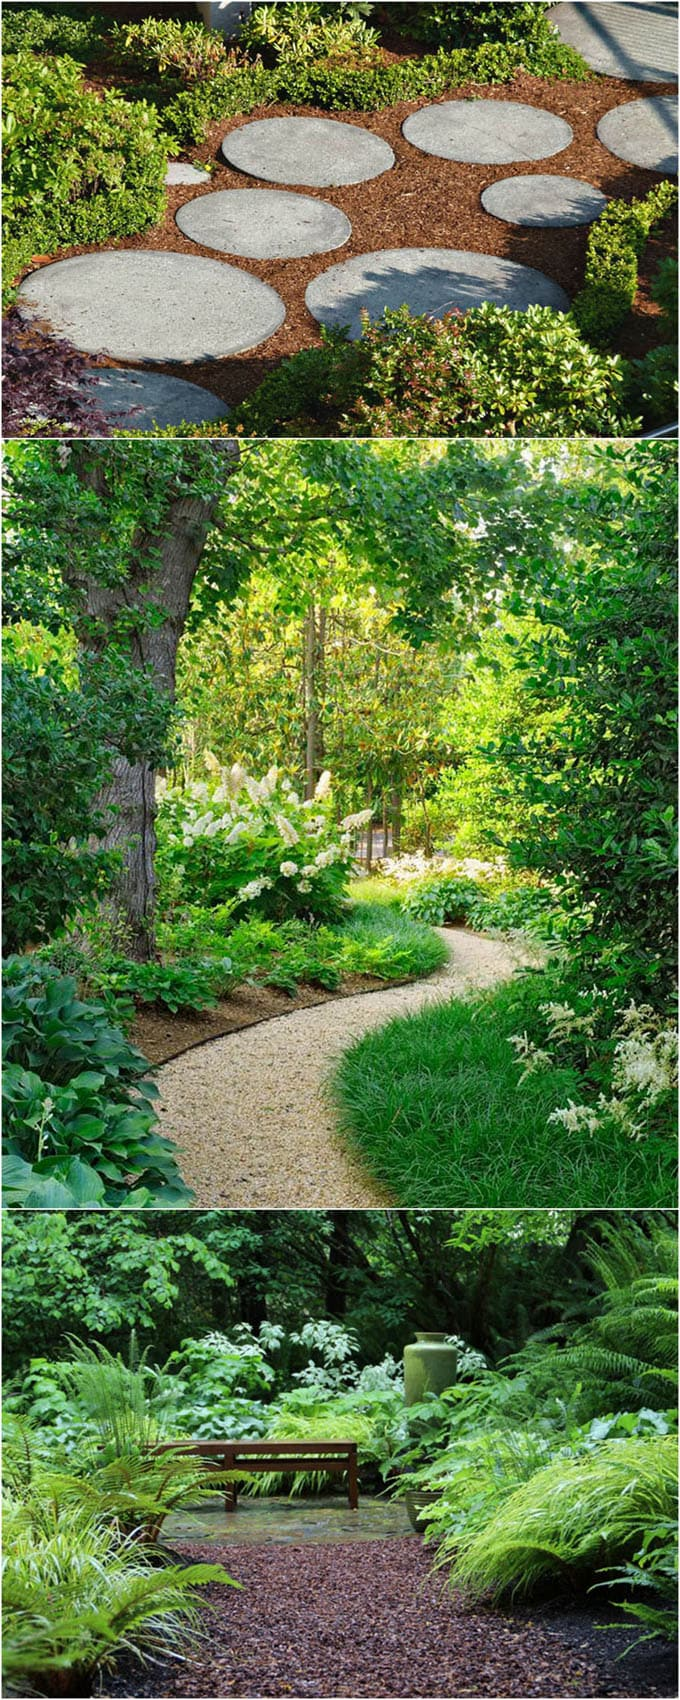 Pros: Wood Chips, Gravel And Stepping Stones ( Perfect For Those Who Loves  To Walk Bare Feet! ) Are Great Beginner Friendly Materials For DIY Garden  Paths.